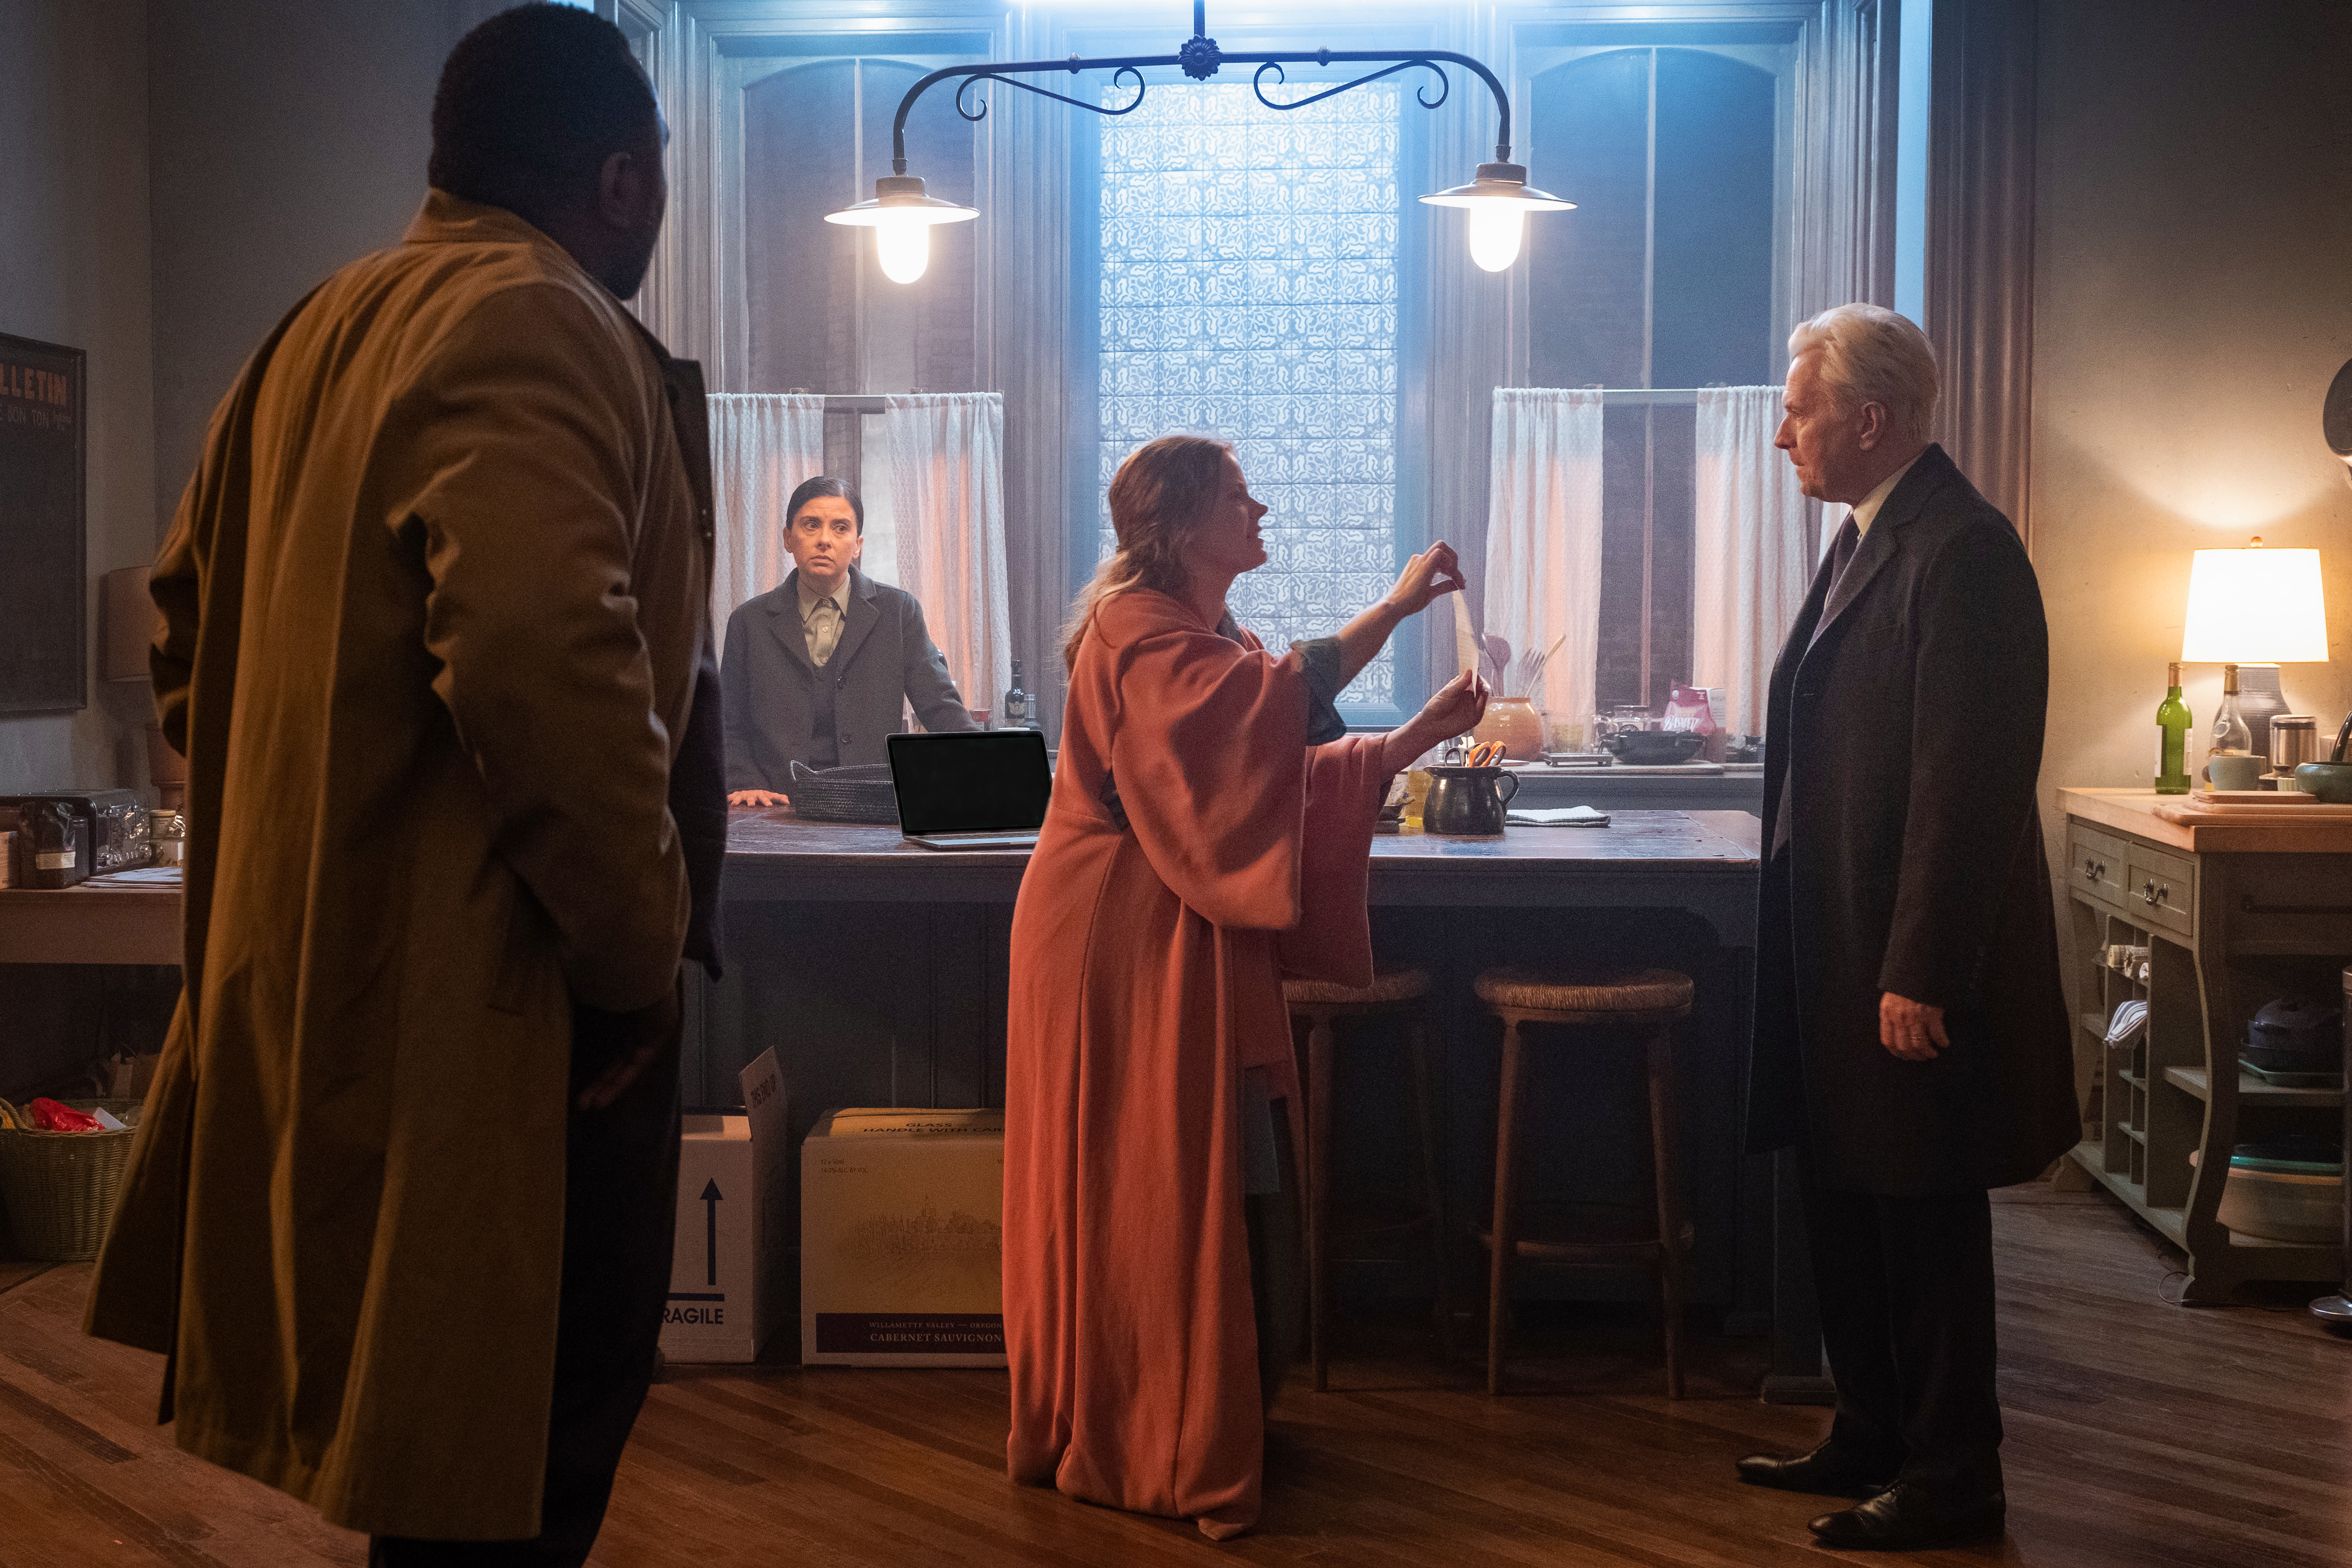 Two detectives (Brian Tyree Henry and Jeanine Serralles) look on as Amy Adams' Anna argues with her neighbor (Gary Oldman)